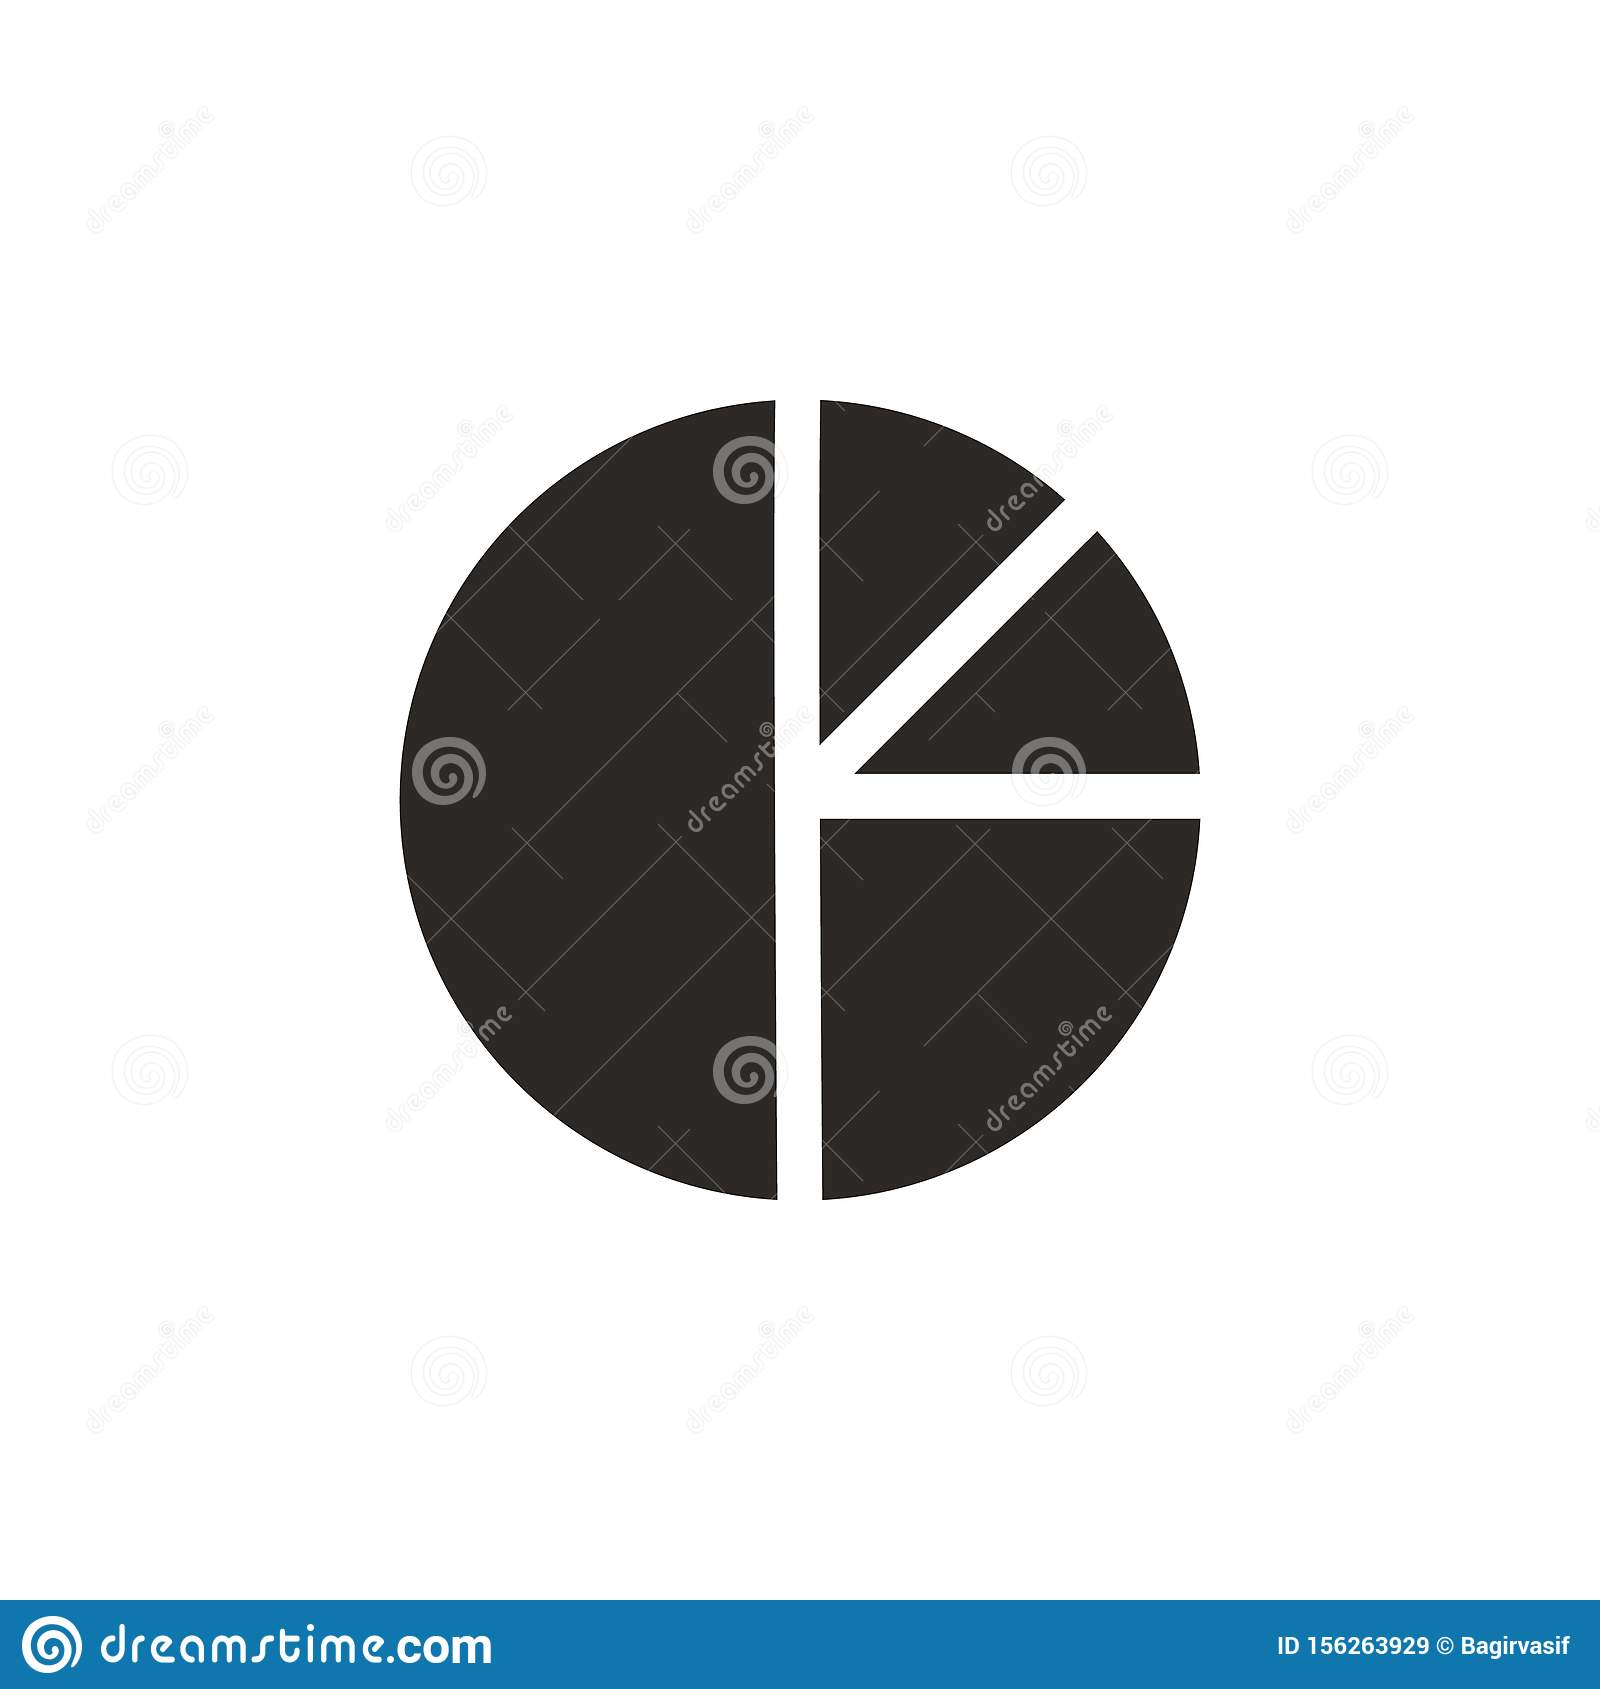 analysis analytics icon vector simple element illustration from ui concept analysis analytics icon vector infographic stock illustration illustration of concept financial 156263929 dreamstime com